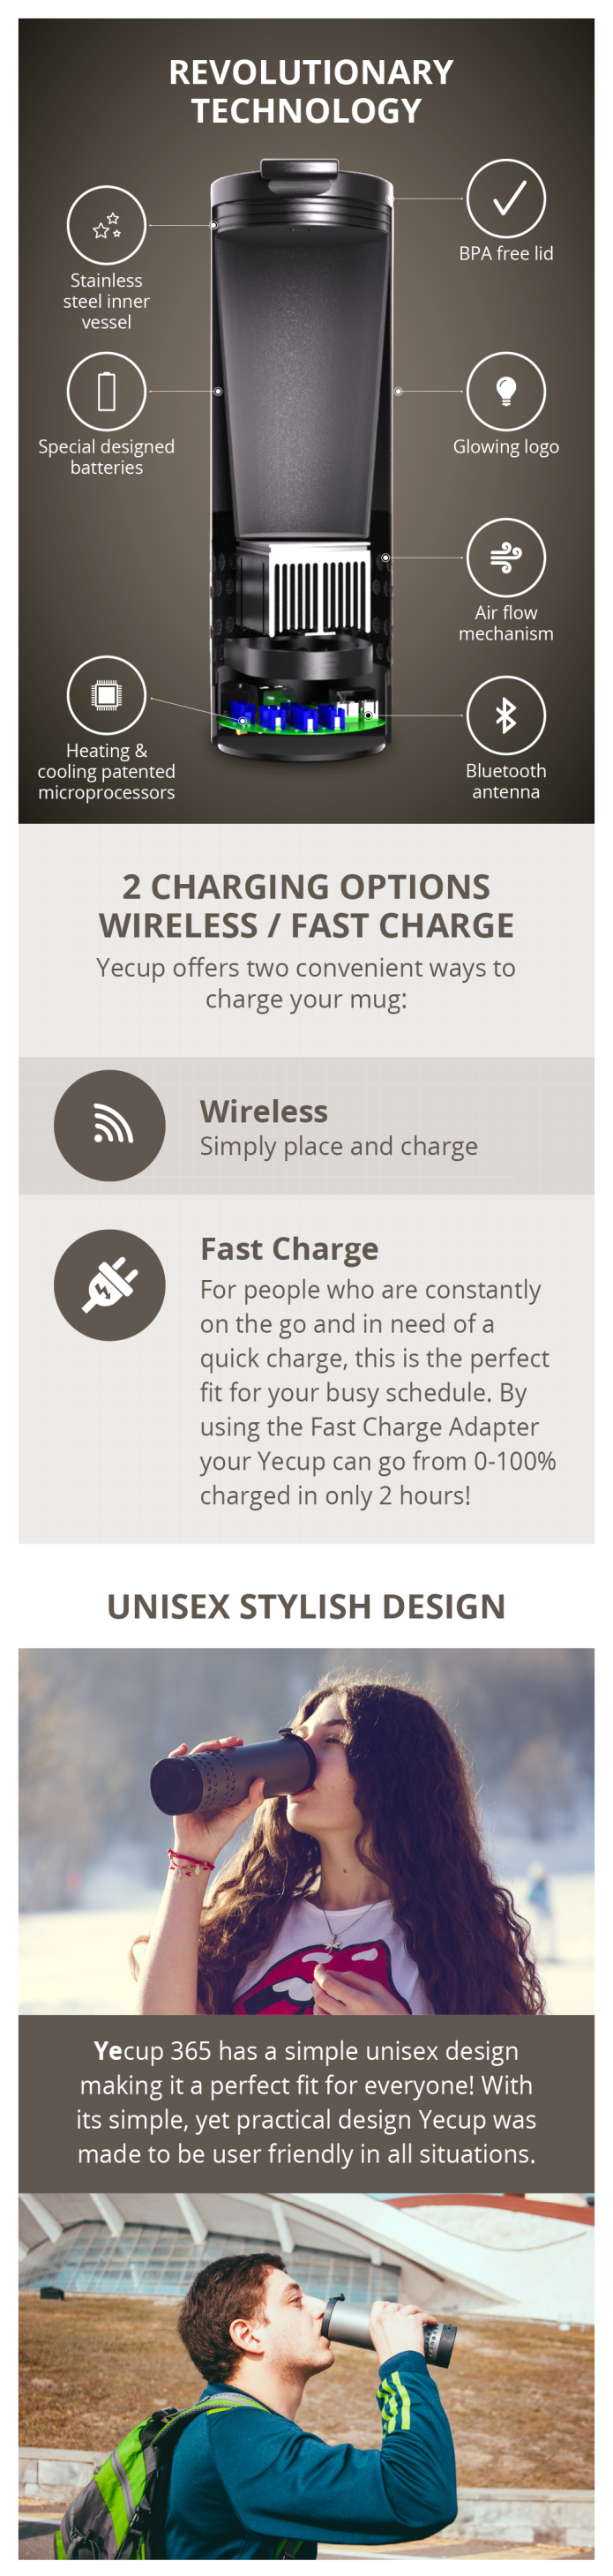 Yecup 365 Your All Season Smart Mug Indiegogo Ltc4012 Fastcharge Battery Charger Controller Electronic Project Shop Now